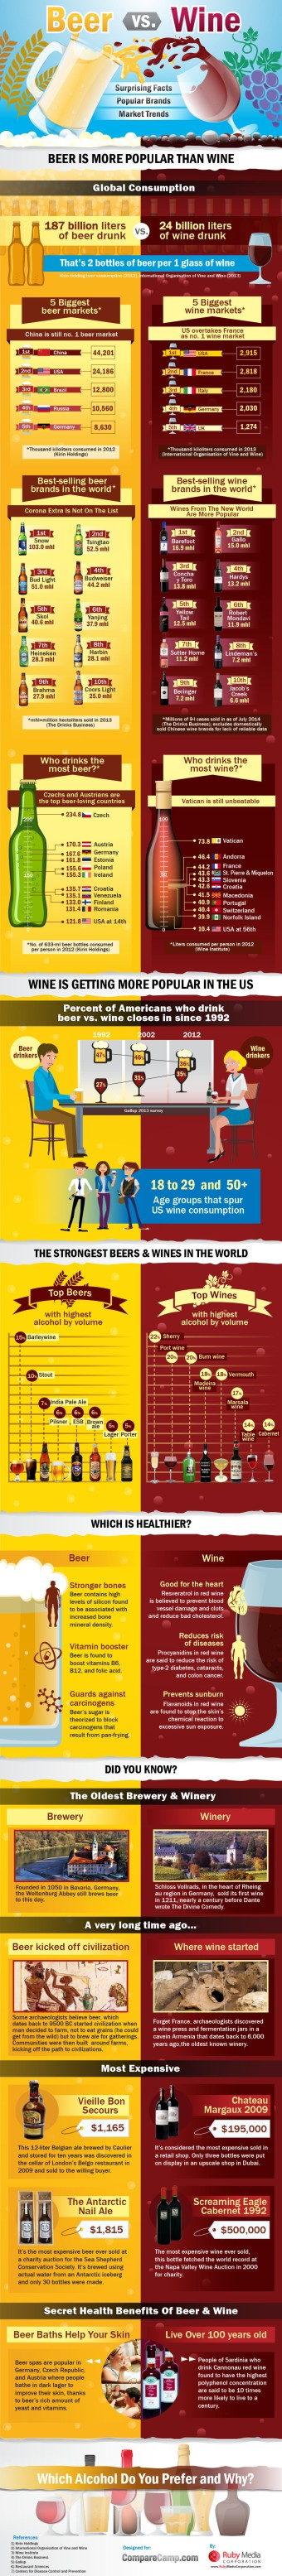 Beer vs. Wine_Infographic_Finale